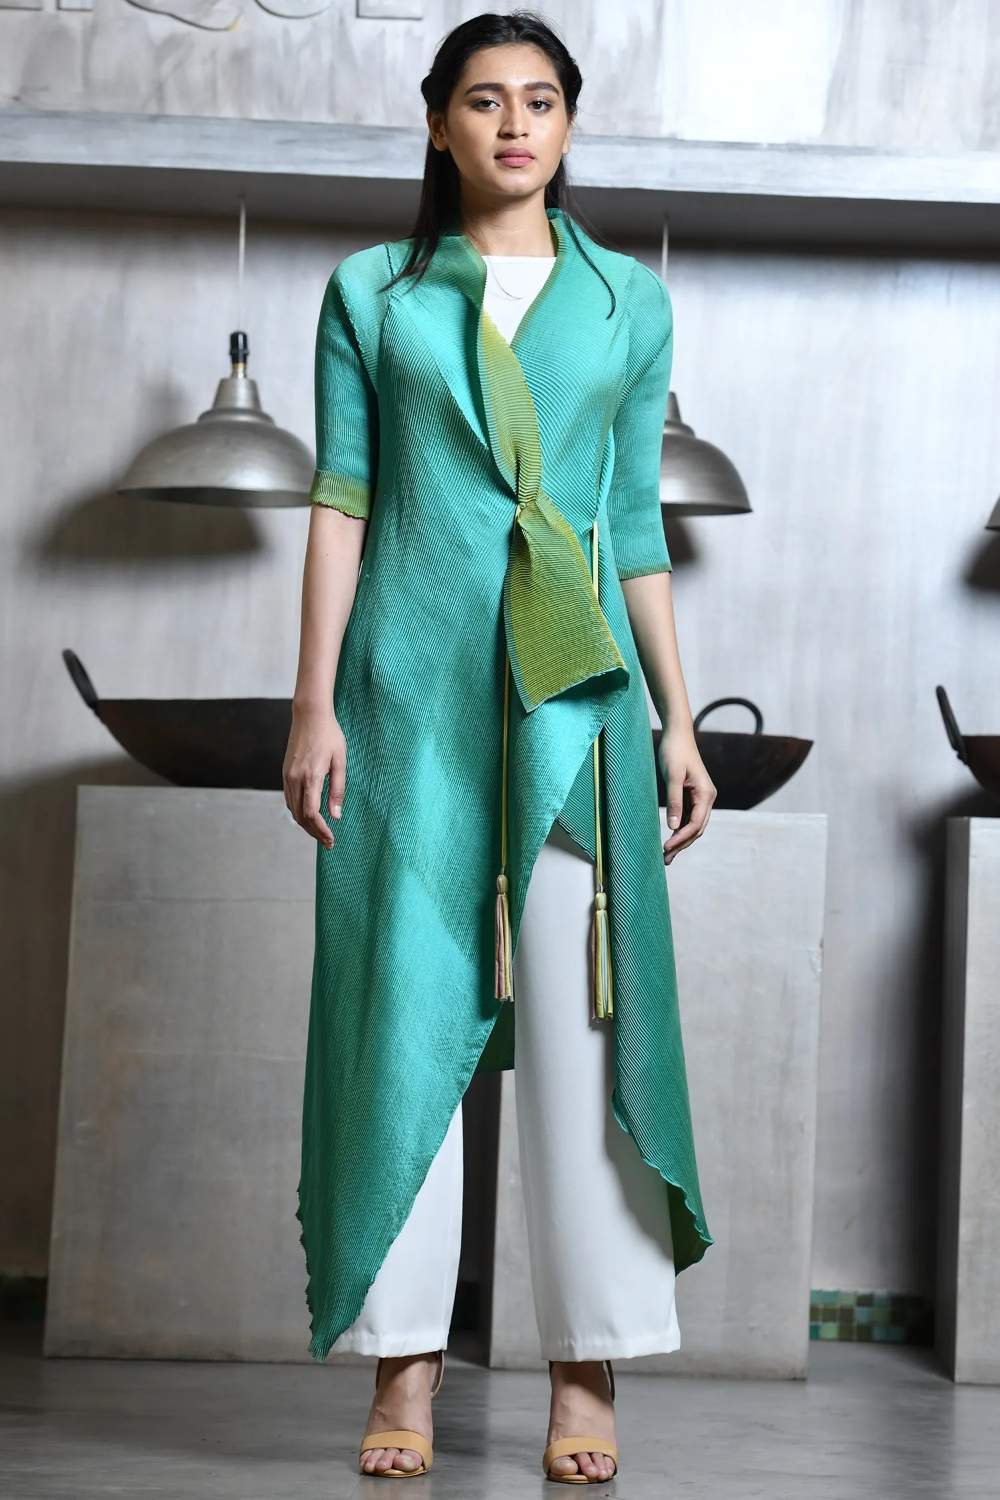 Buy Overlap Long Jacket By Kiran Uttam Ghosh At Aza Fashions In 2020 Fashion Designer Dresses Indian Long Jackets For Women